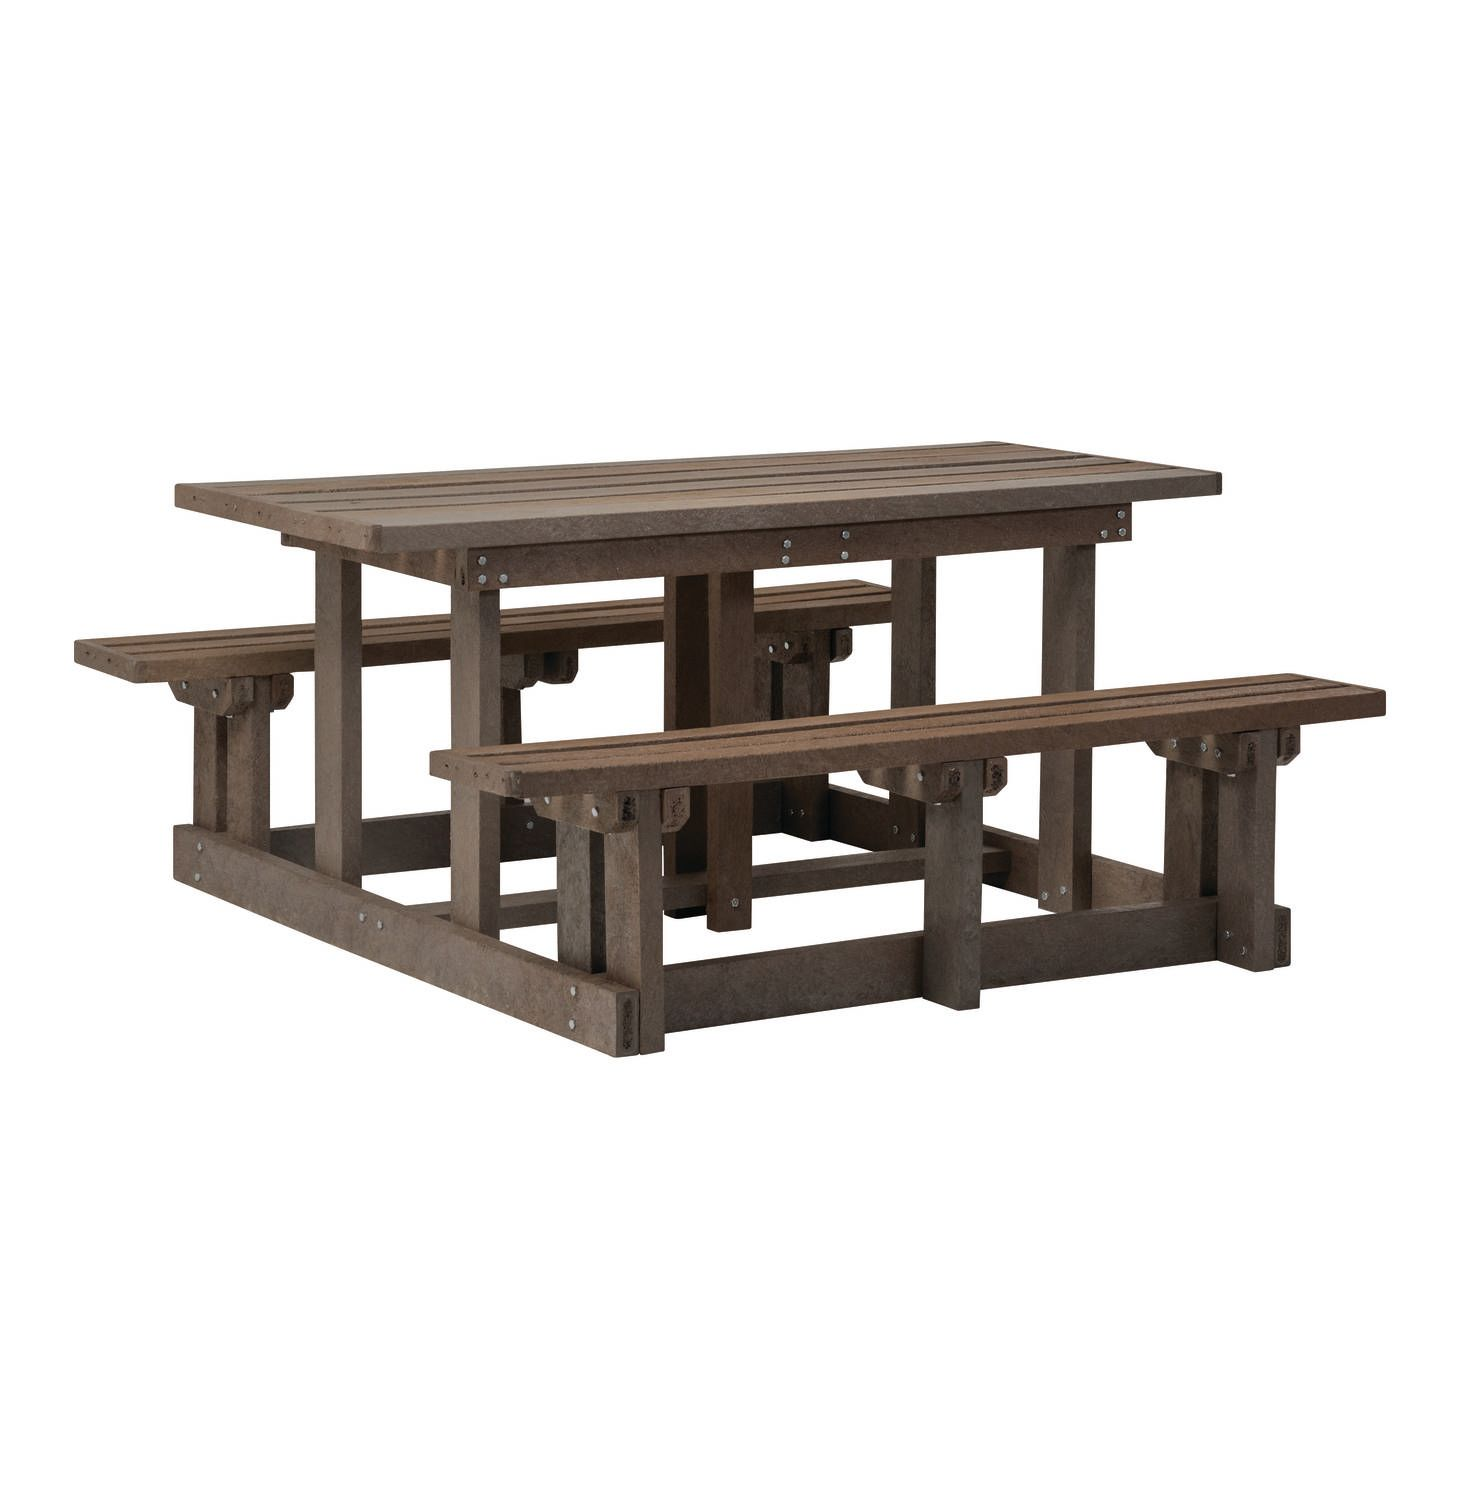 Terrace Leisure Eco 6 Seater Picnic Bench Set Brown Lowest Prices Specials Online Makro